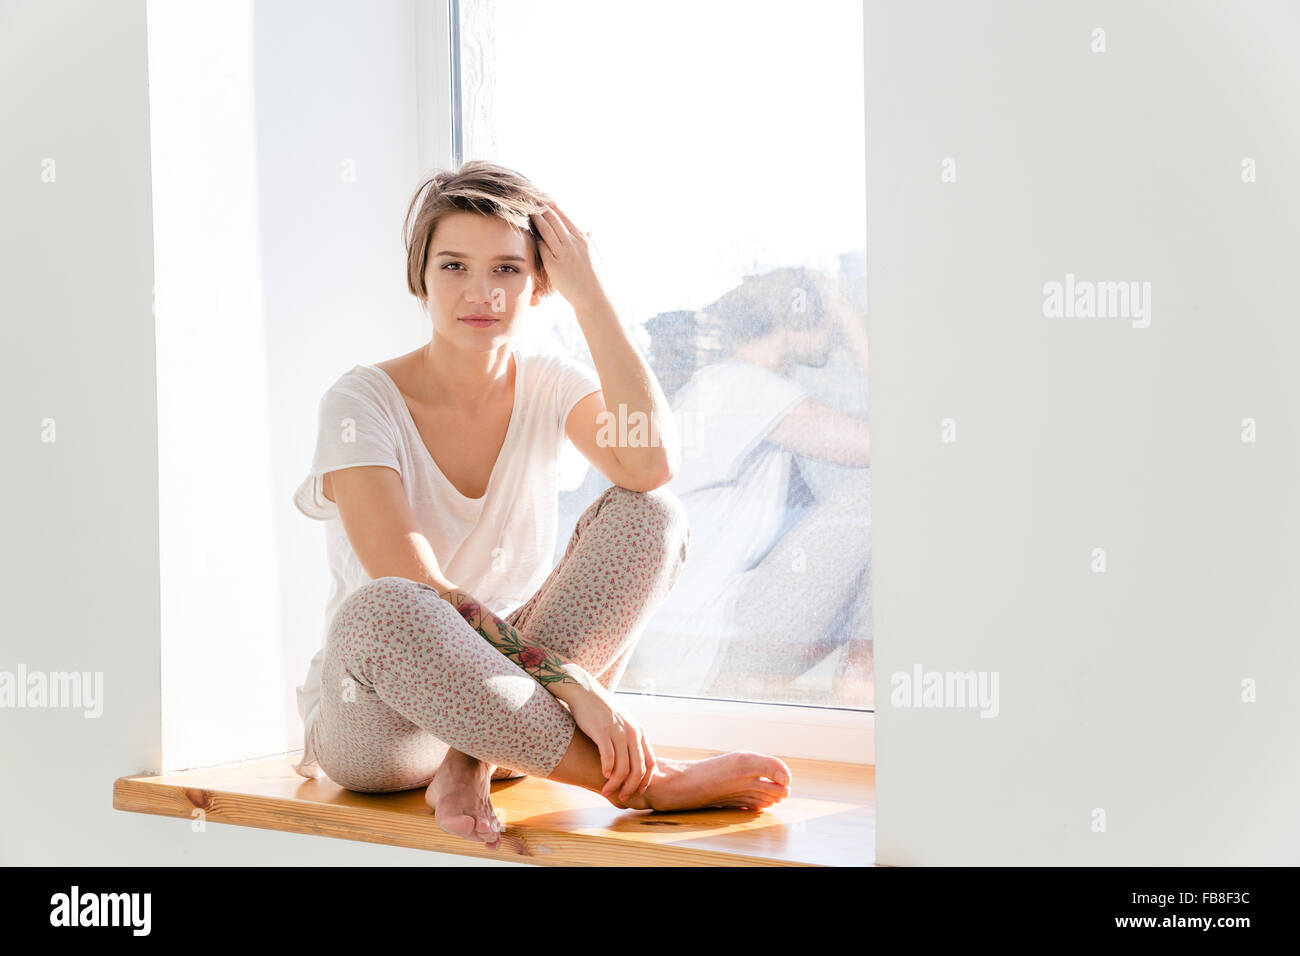 Cute Lovely Young Woman With Short Haircut In Pajamas Sitting On